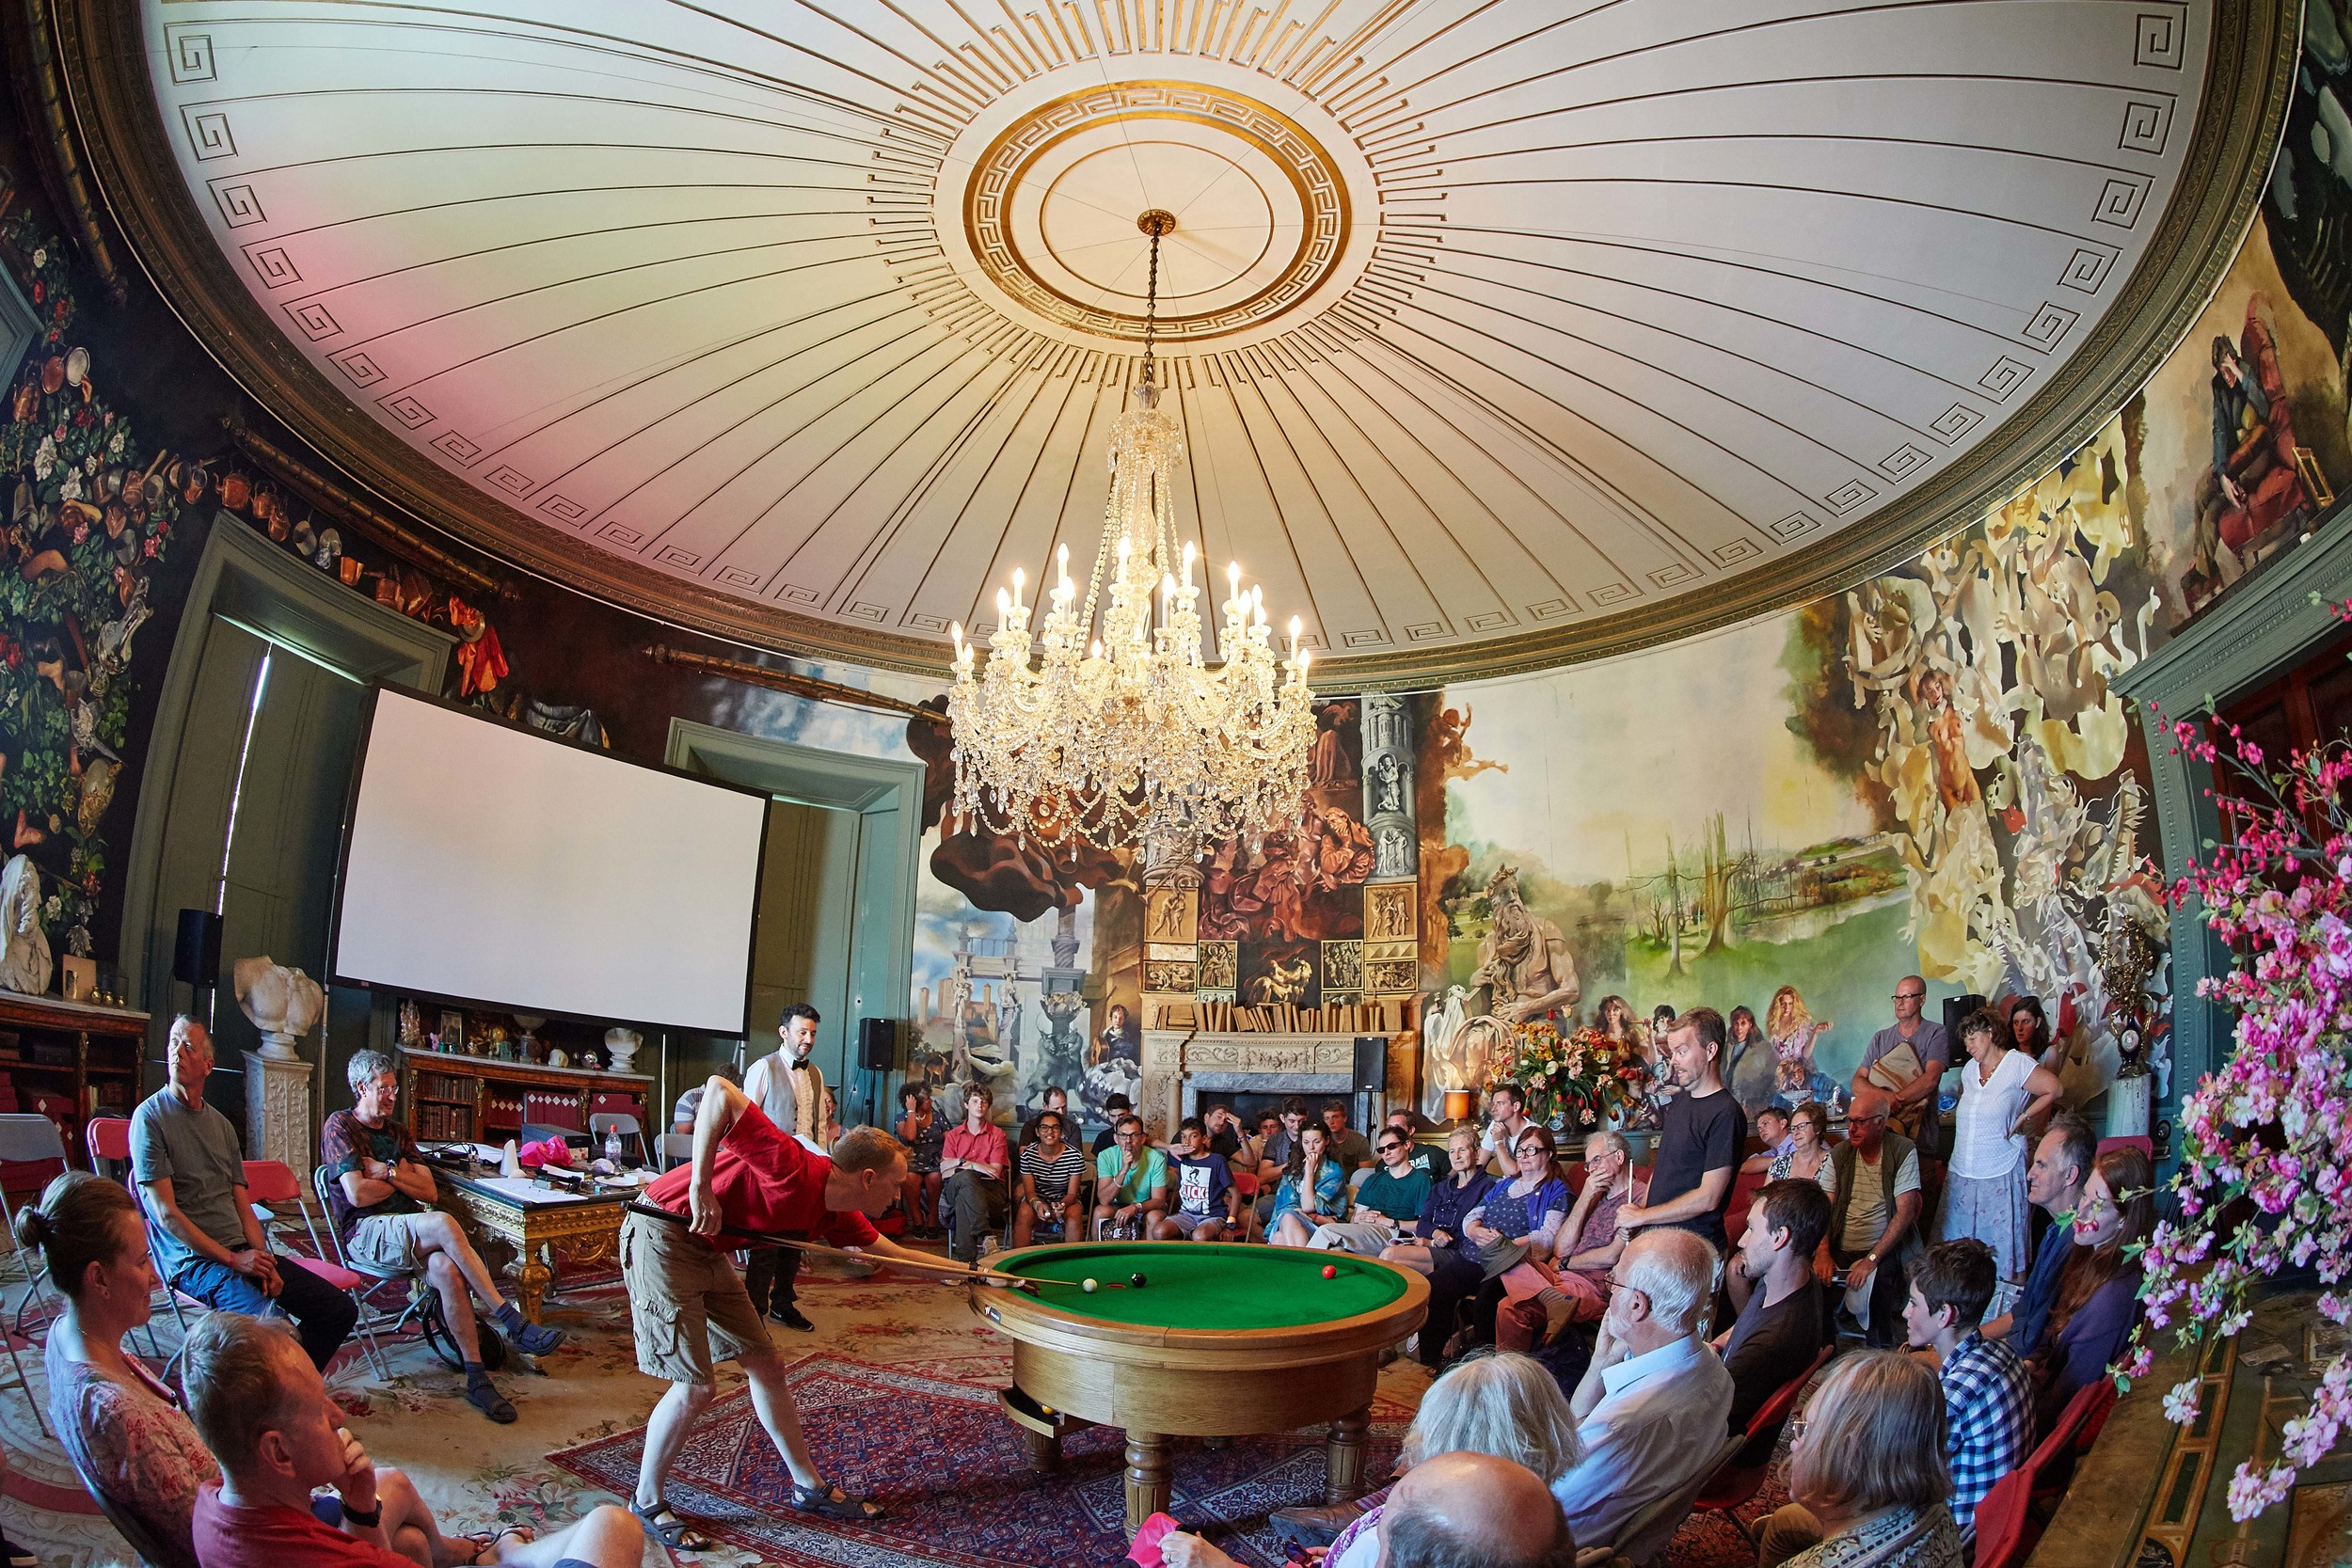 The tournament was held in the Round Room at Port Eliot, Cornwall, on July 31 and August 1, 2015. The room,  designed in 1804 by Sir John Soane, is one of the architectural highlightsof Port Eliot. British artist Robert Lenkiewicz spent30 years on and off painting the mural and it is considered his masterpiece. With so muchBritisharchitectural and artistic heritage in the room it seemed the perfect venue to make sporting history with the launch of LOOP. The pocket was positioned directly underneath the centre of the chandelier. Picture: Michael Bowles.